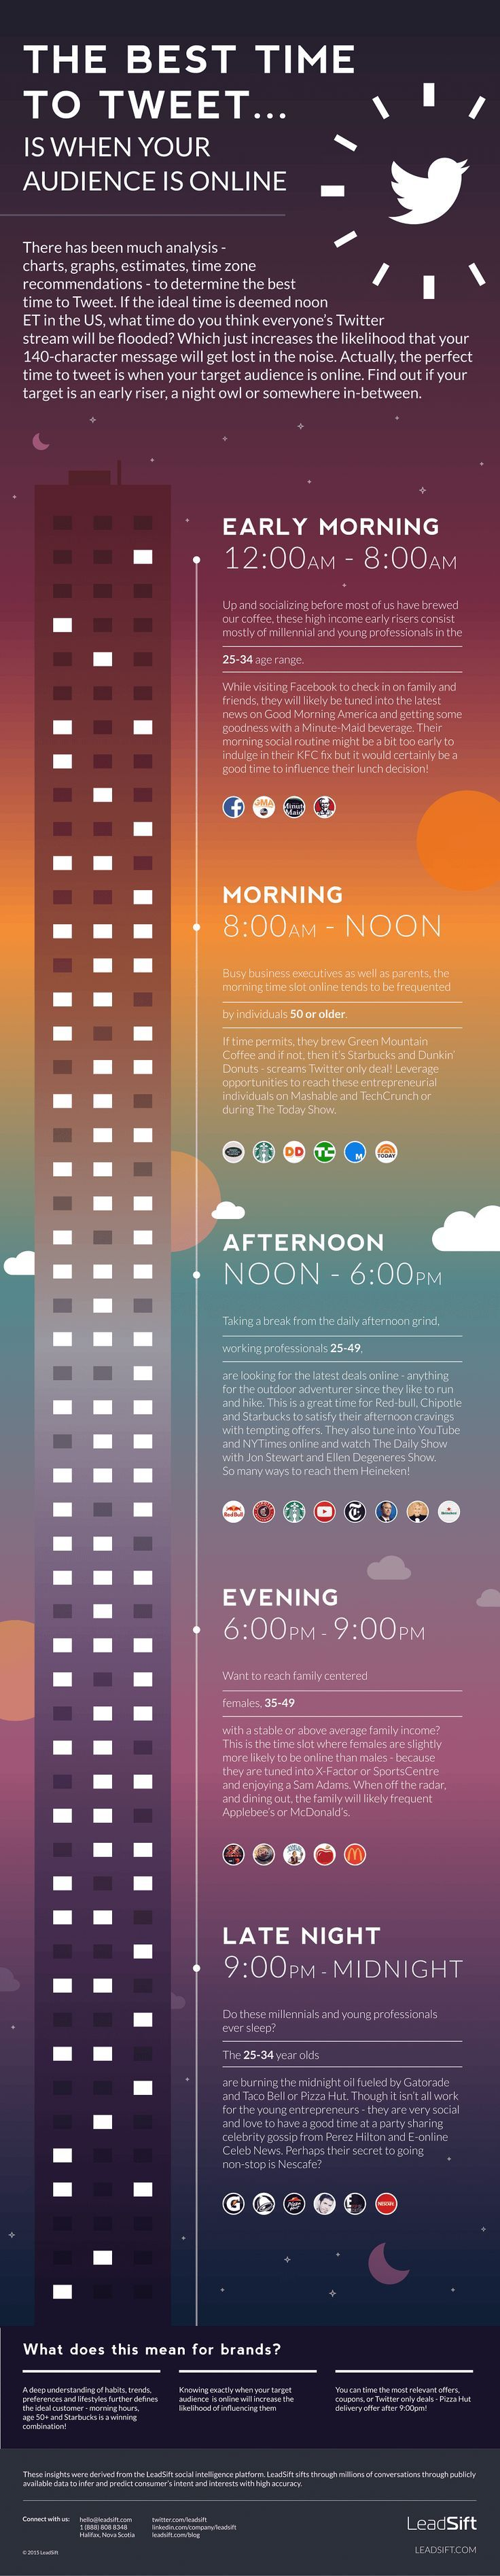 The Best Time to Tweet Is When Your Audience Is Online [Infographic]